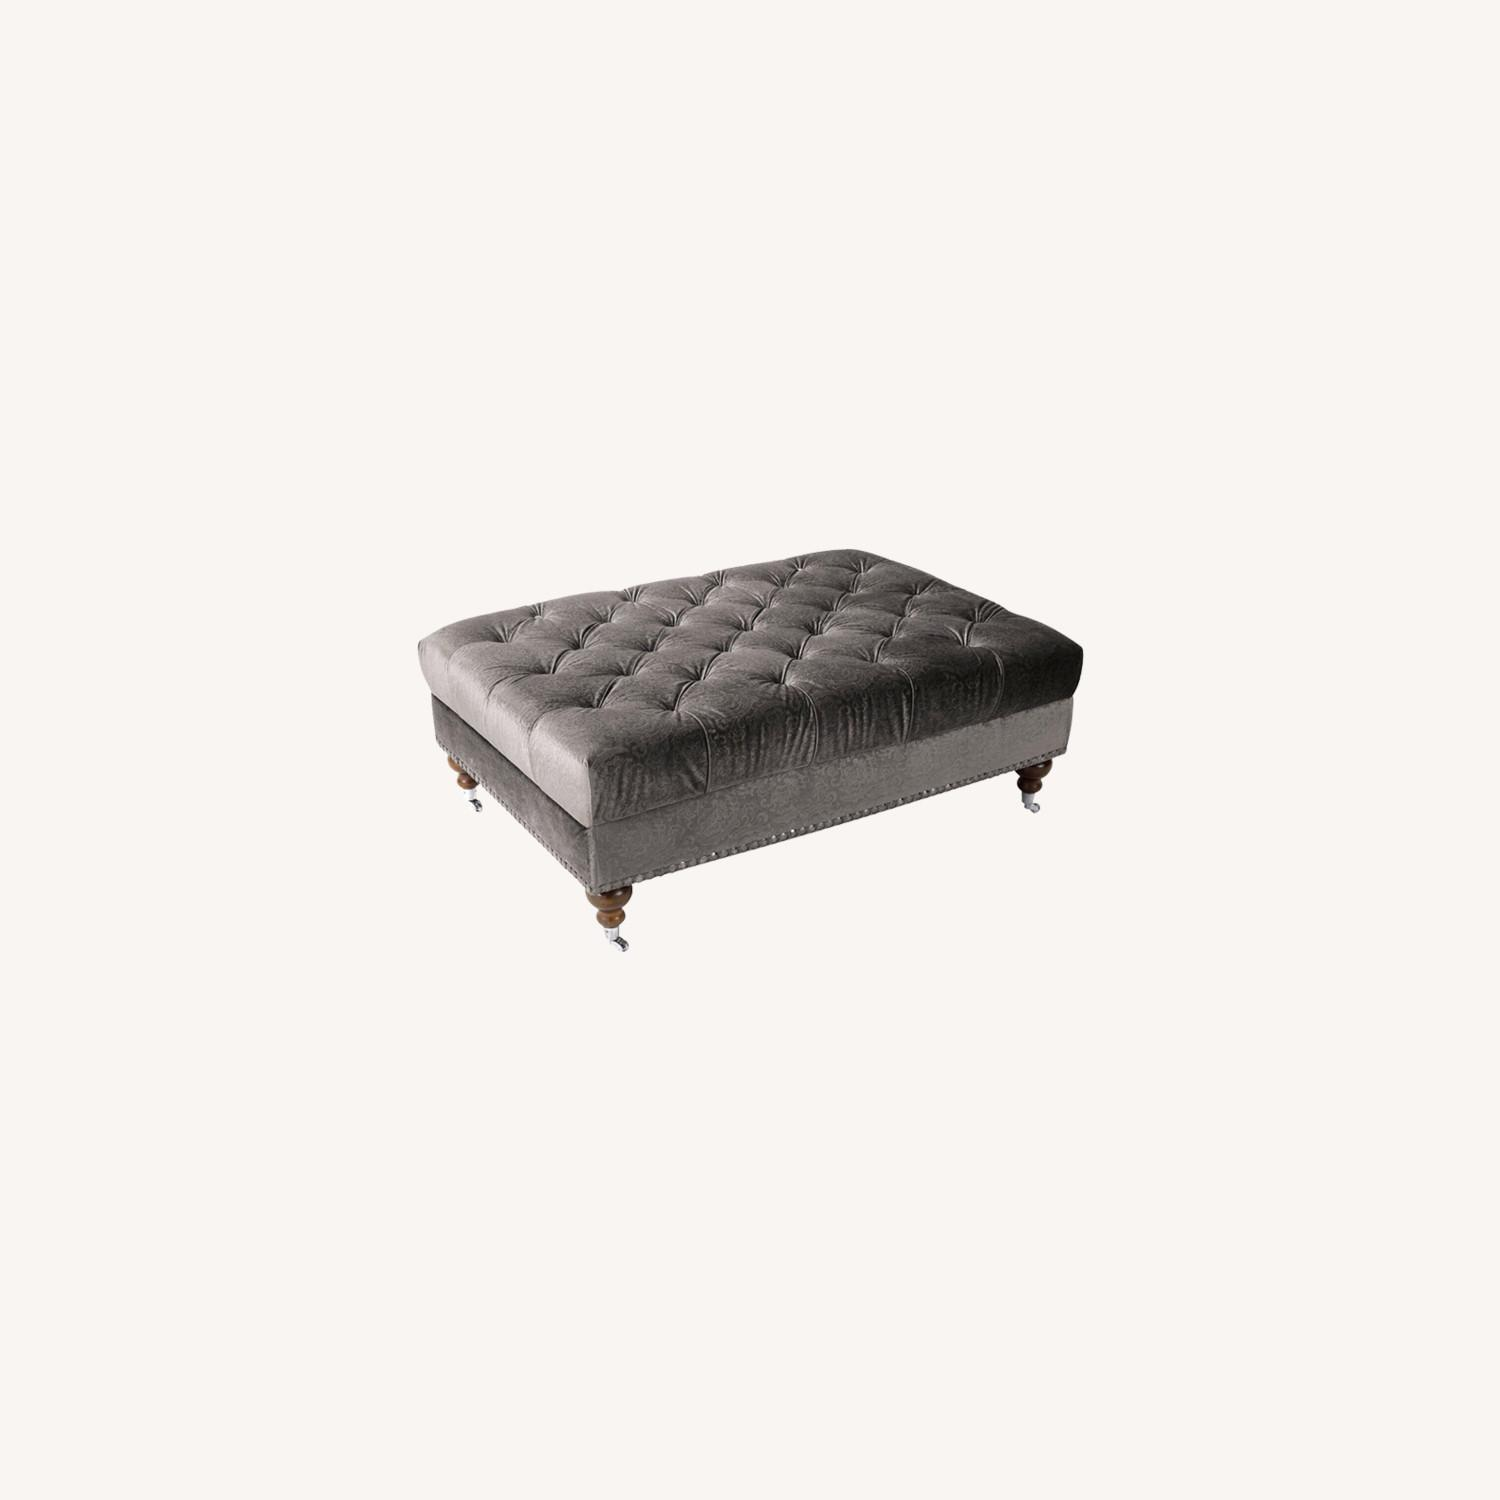 Raymour & Flanigan Duchess Cocktail Ottoman by Aria Designs - image-0